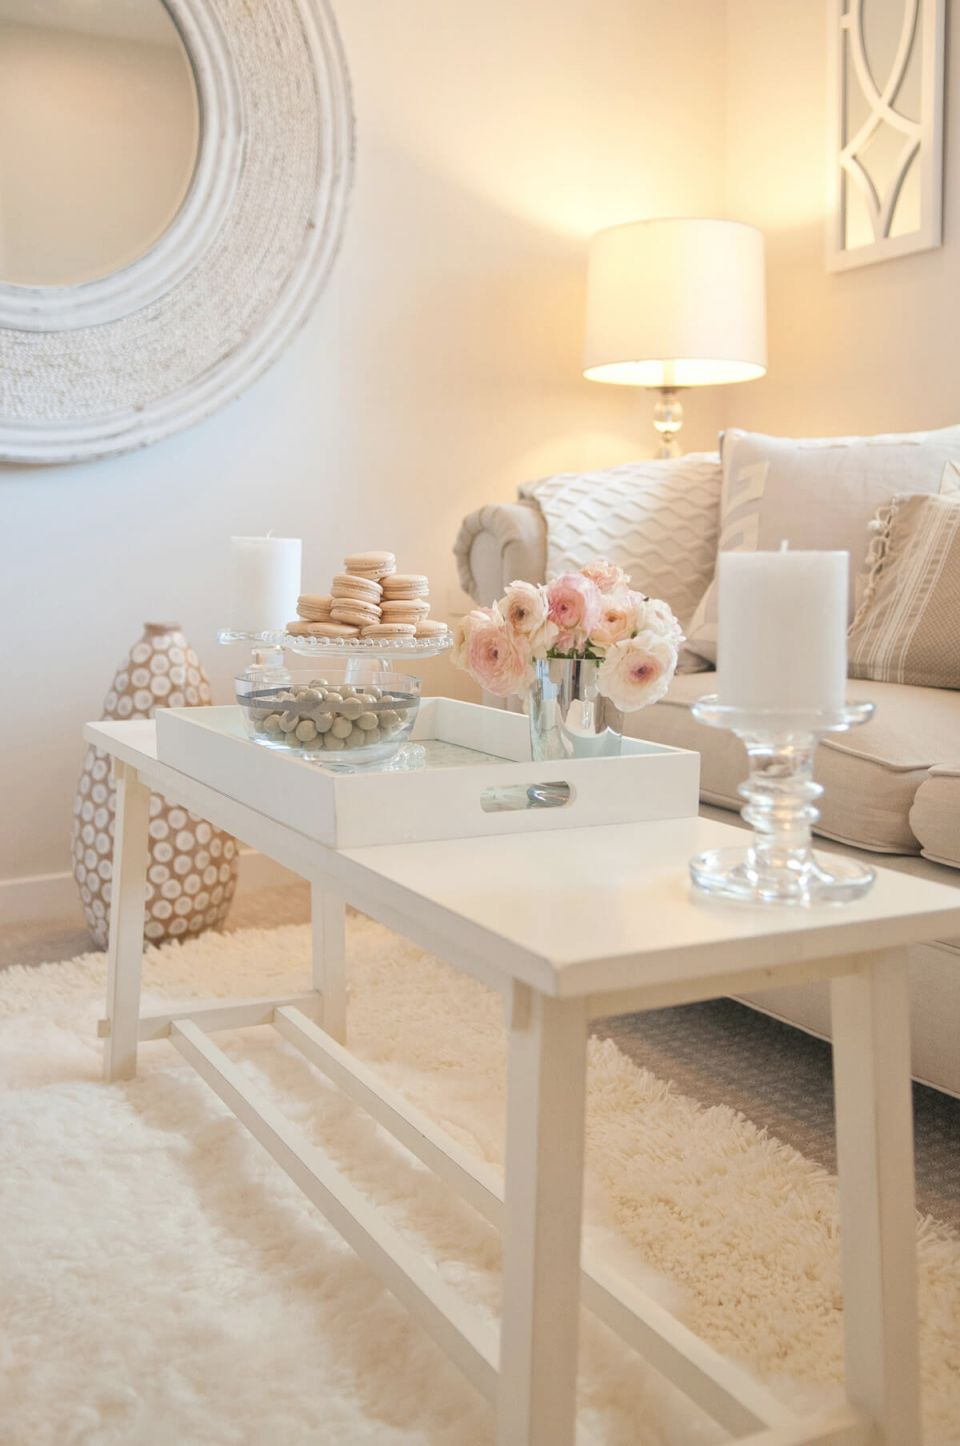 37 Best Coffee Table Decorating Ideas And Designs For 2019 with regard to Living Room Coffee Table Decorating Ideas